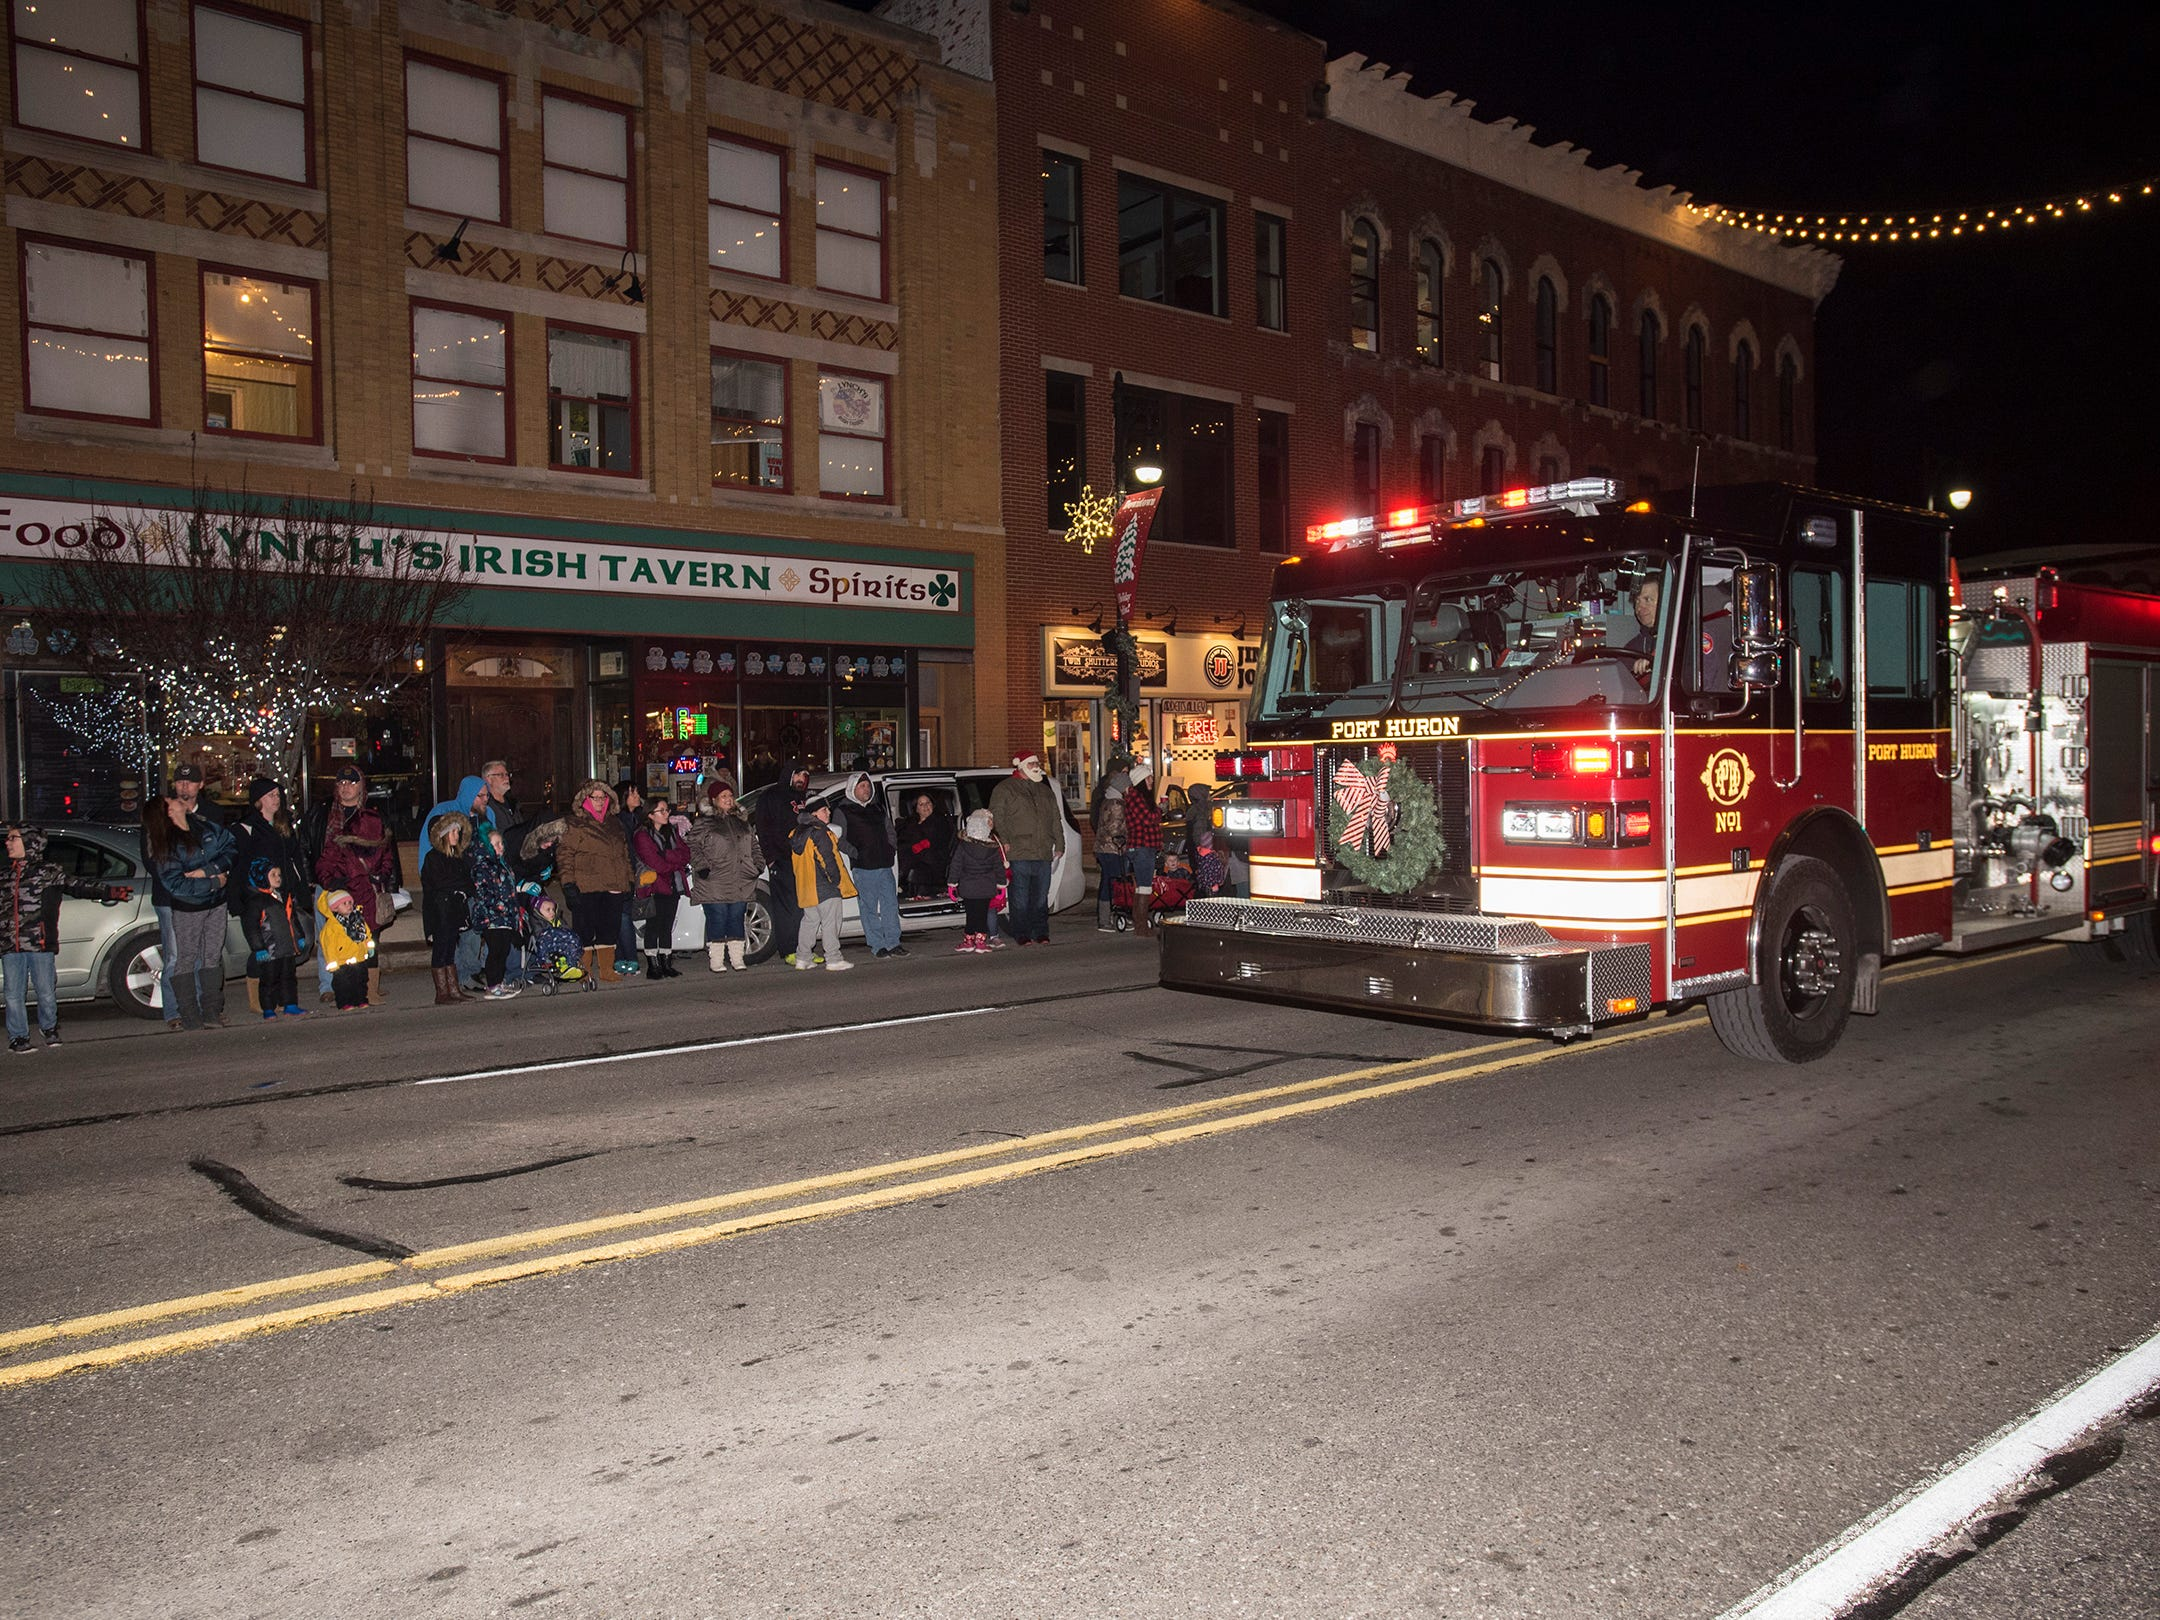 A Port Huron firetruck drives down Huron Avenue during Sperry's Santa Parade Friday, Nov. 23, 2018 in Port Huron.